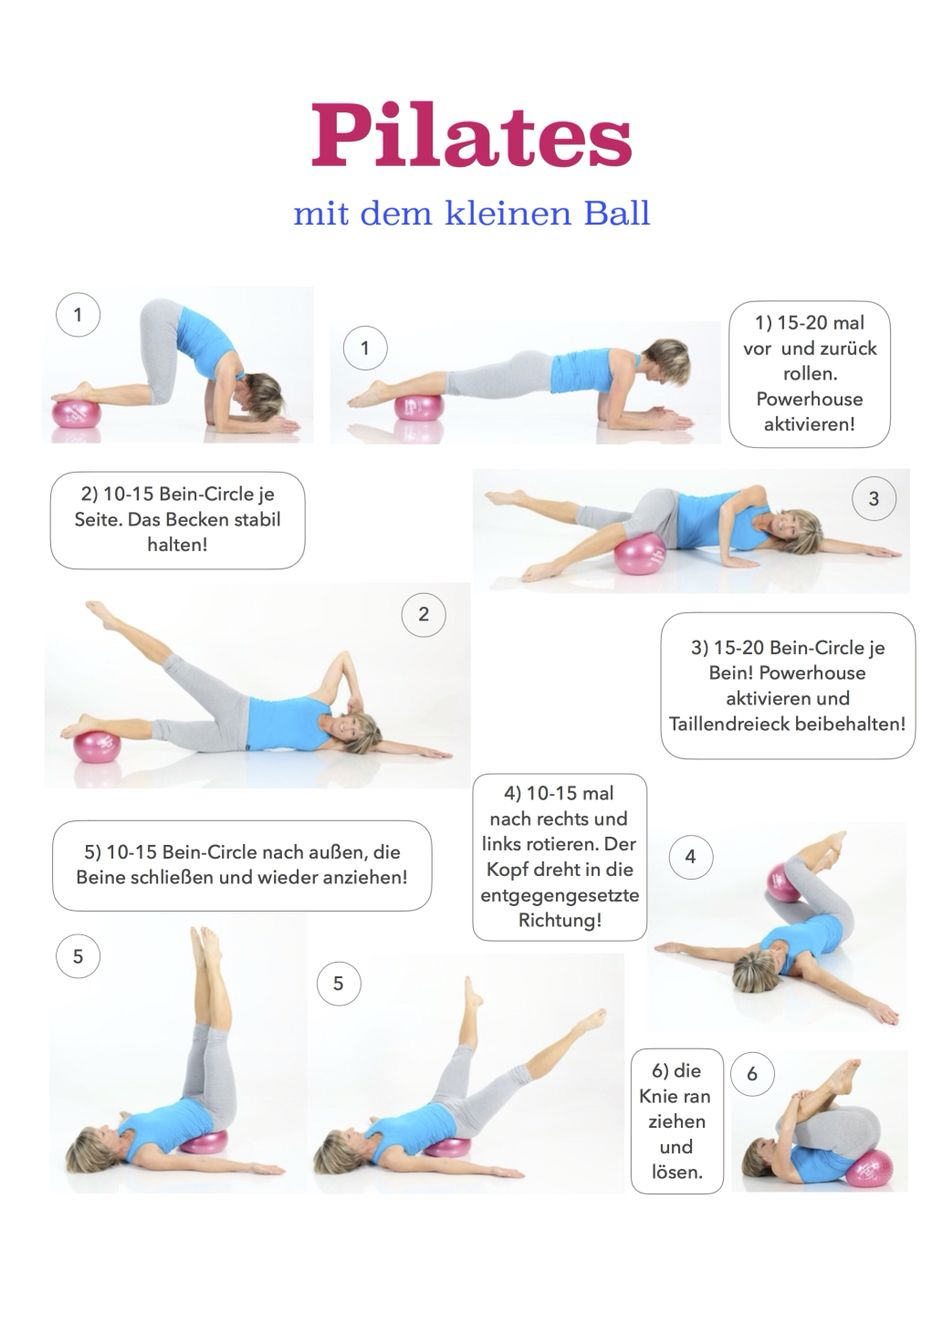 pilates mit dem kleinen ball fitness pinterest gewichtsreduktion sport bungen und. Black Bedroom Furniture Sets. Home Design Ideas